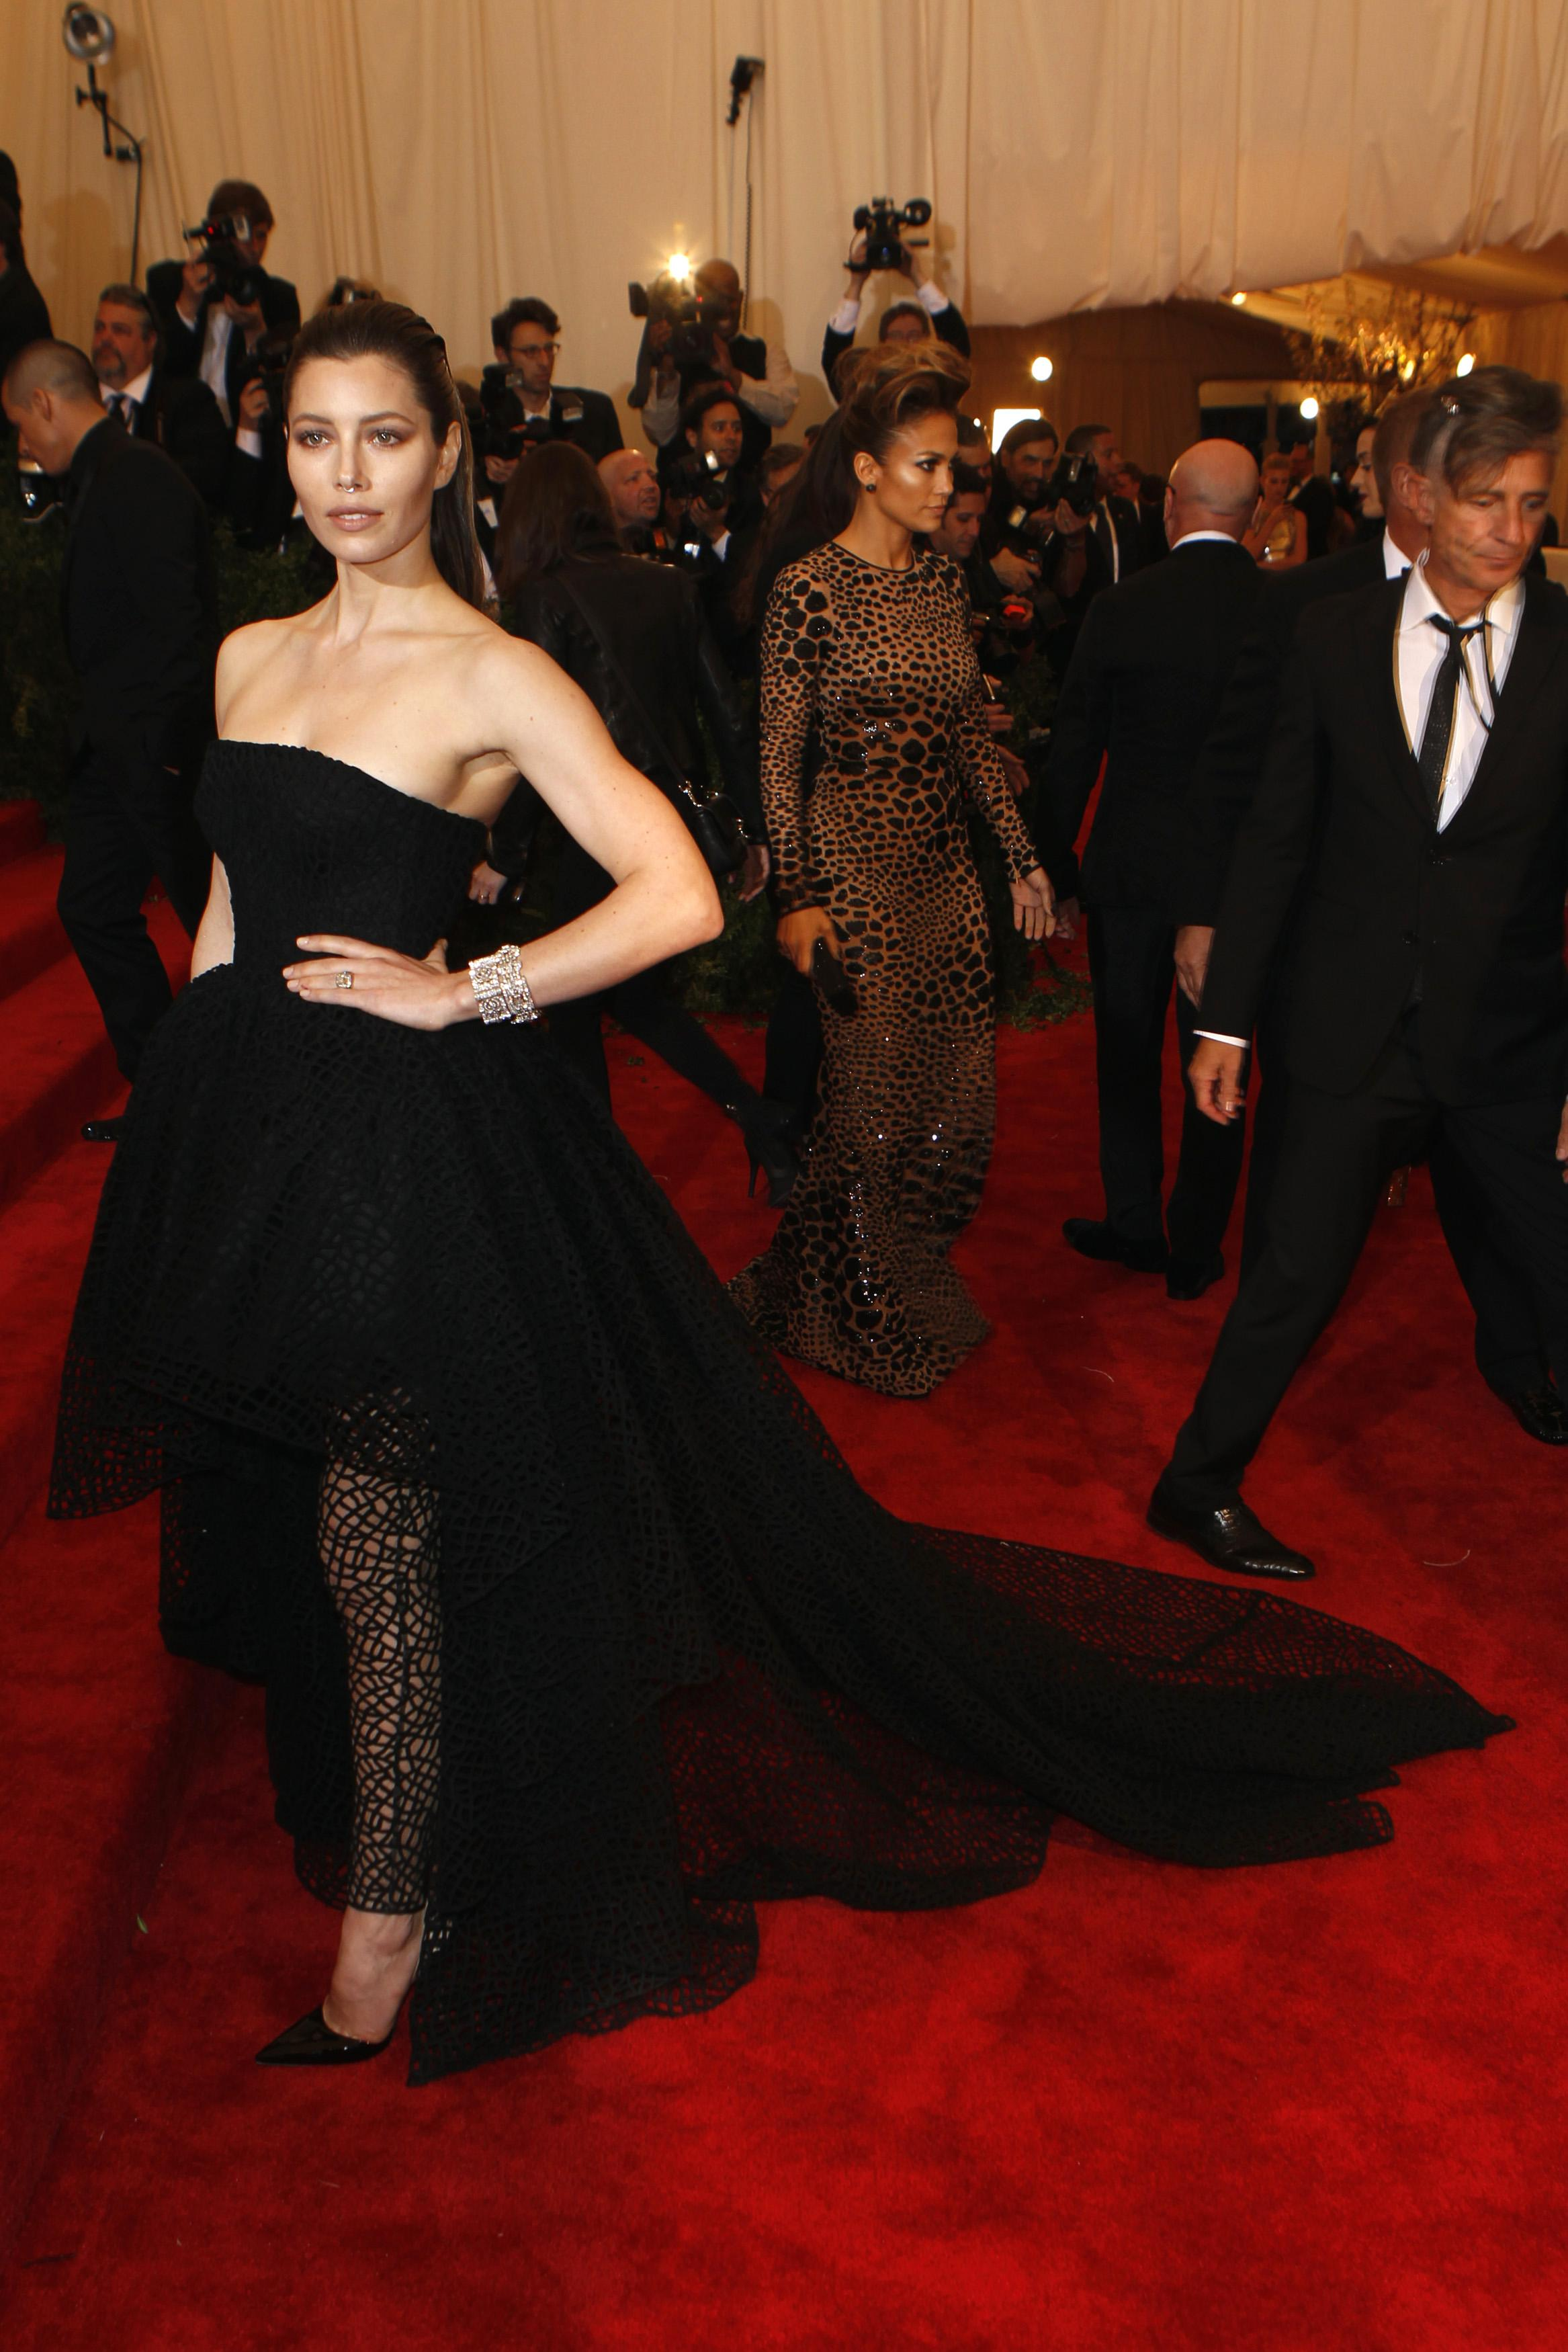 Jessica Biel at the 2013 Met Gala